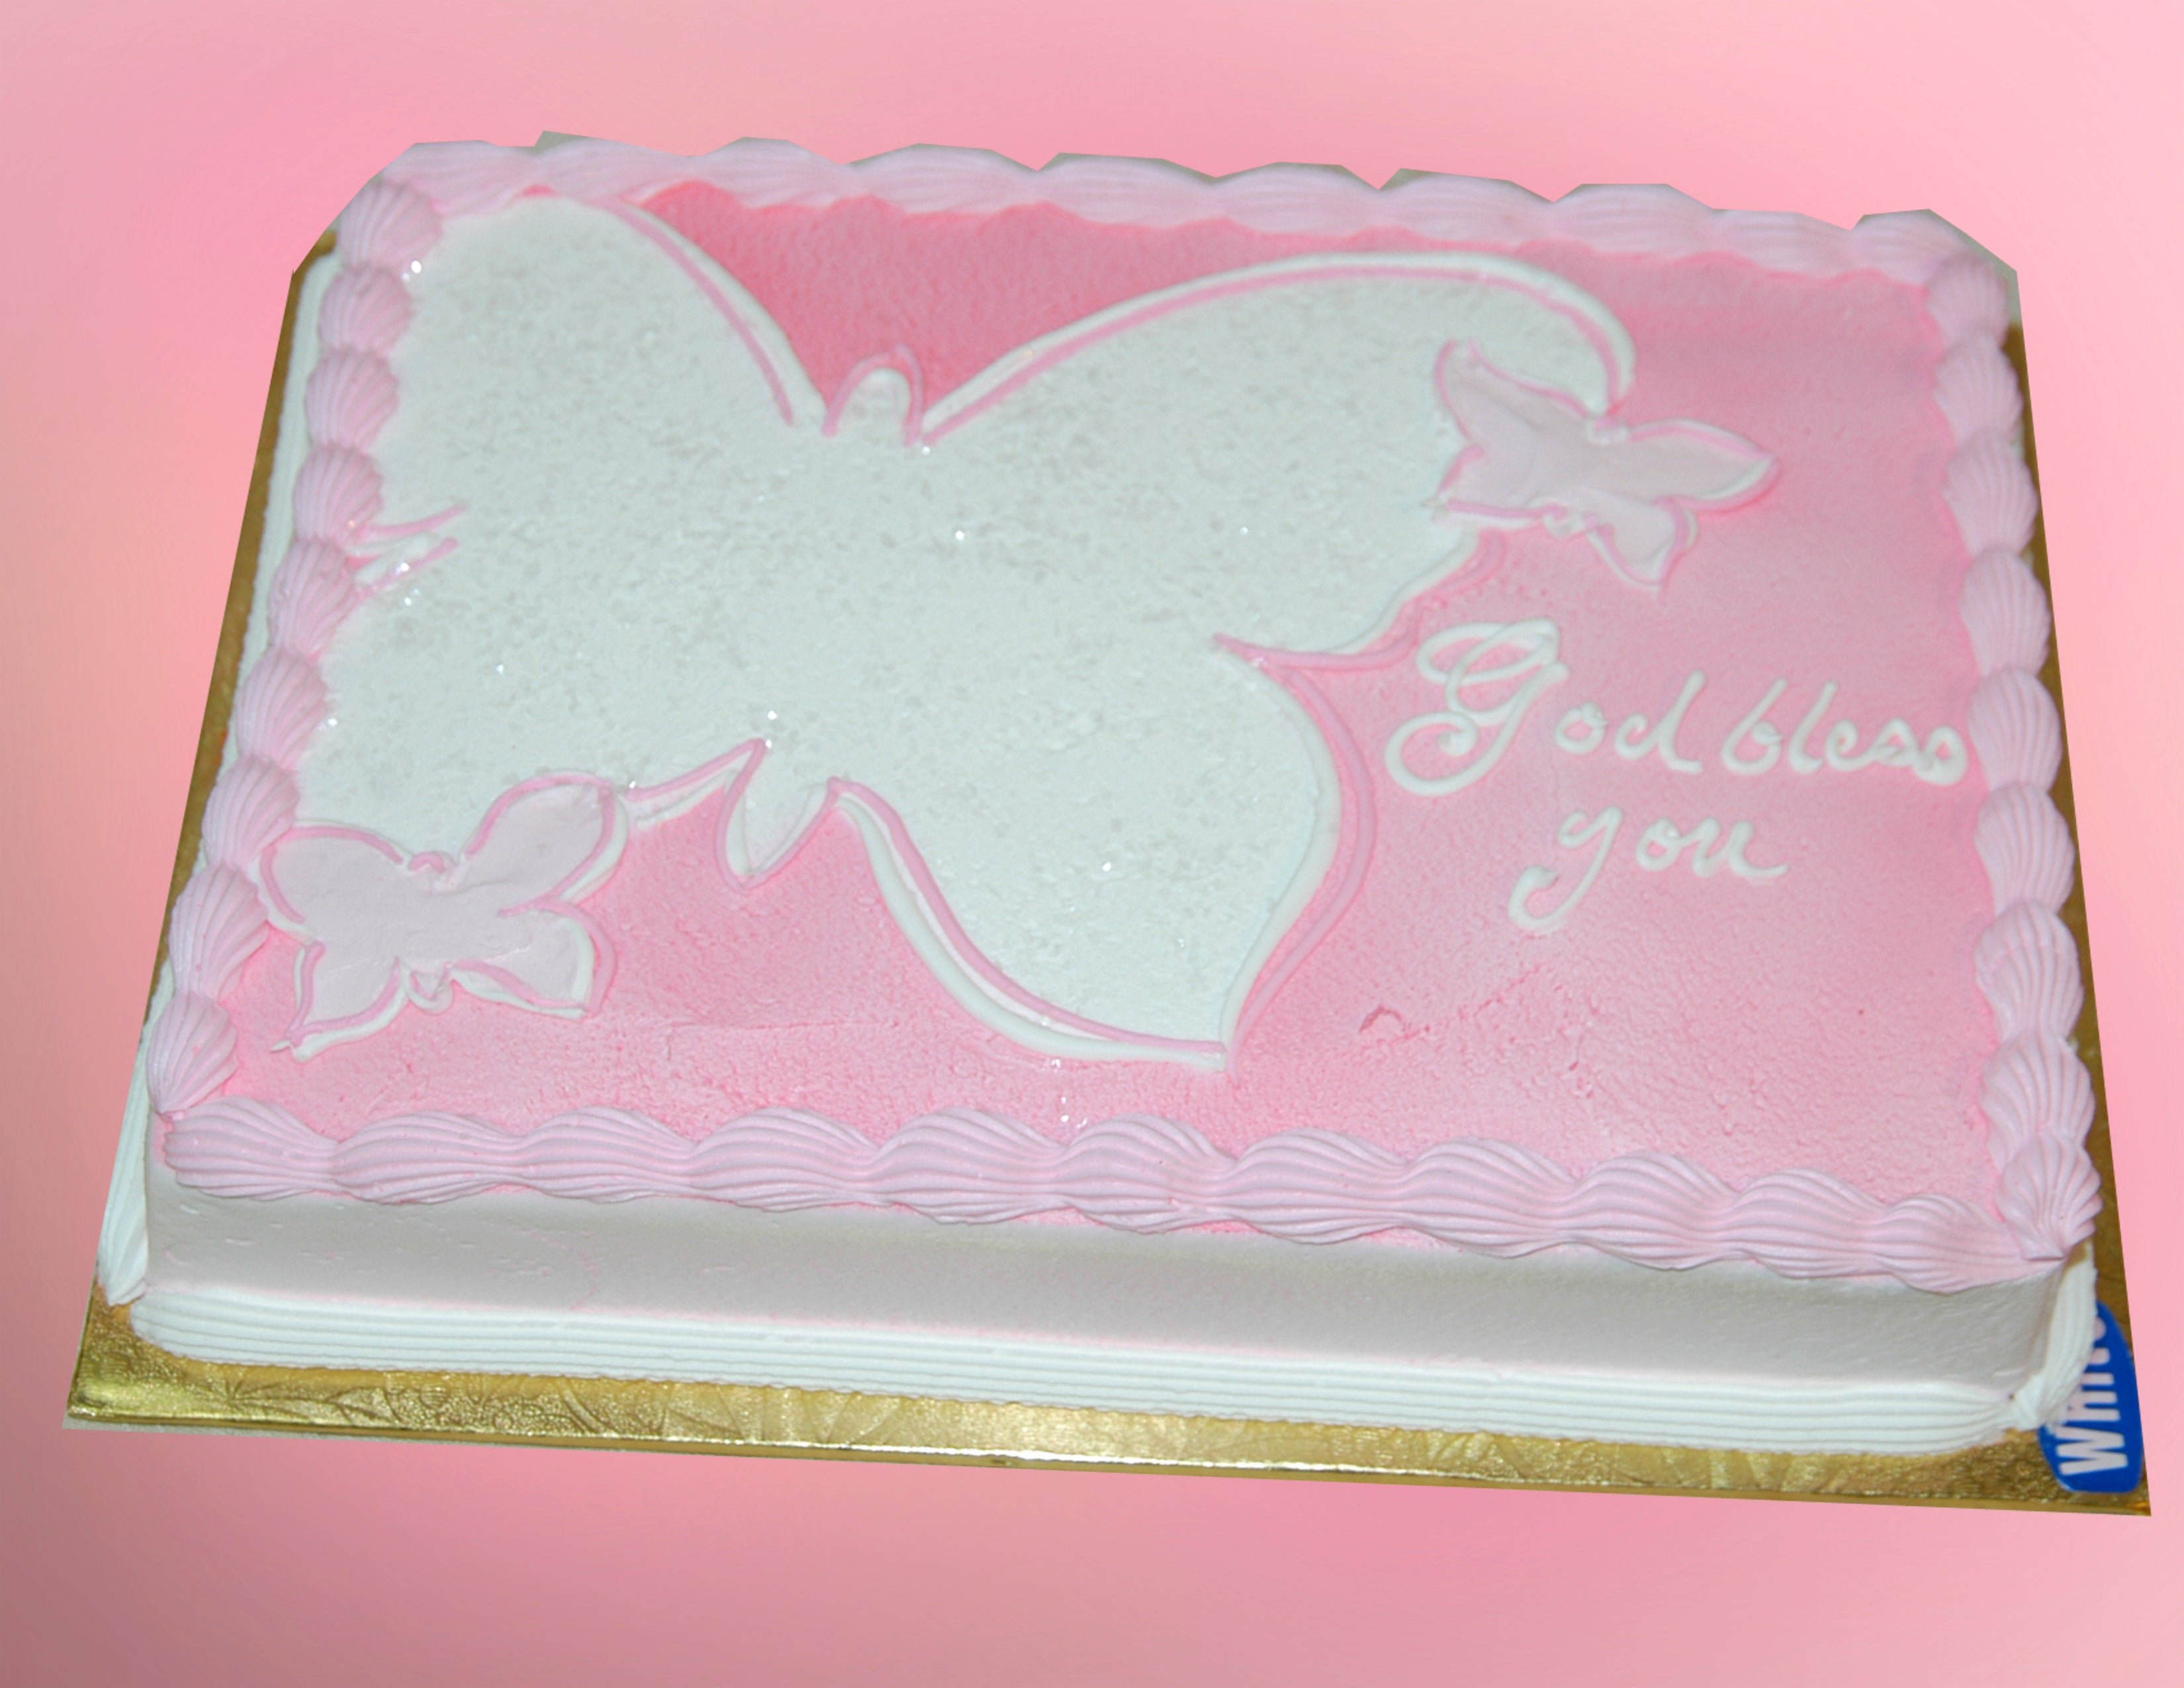 McArthur's Bakery Custom Cake with Pink Background, White Butterfly